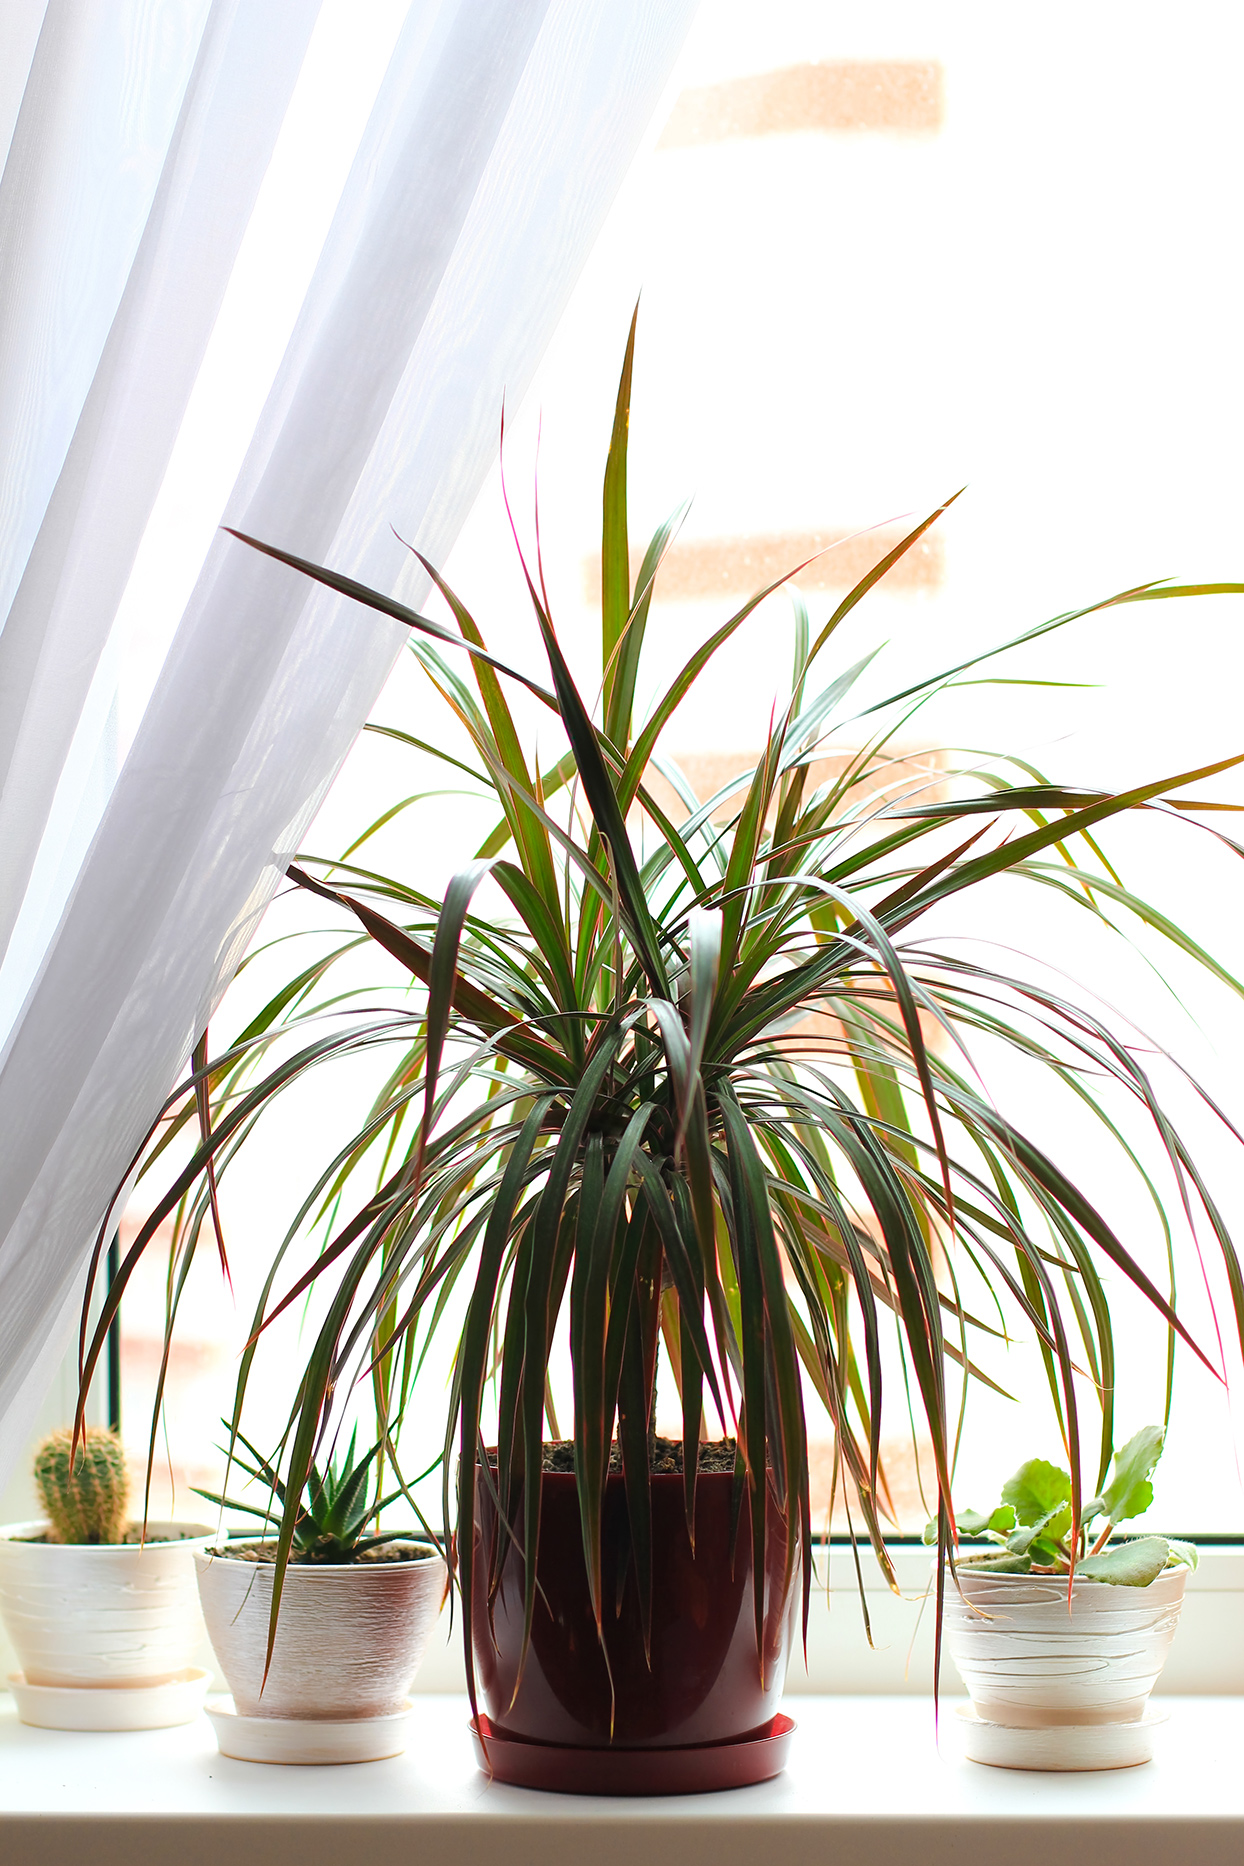 Dracaena plant in front of window with smaller plants